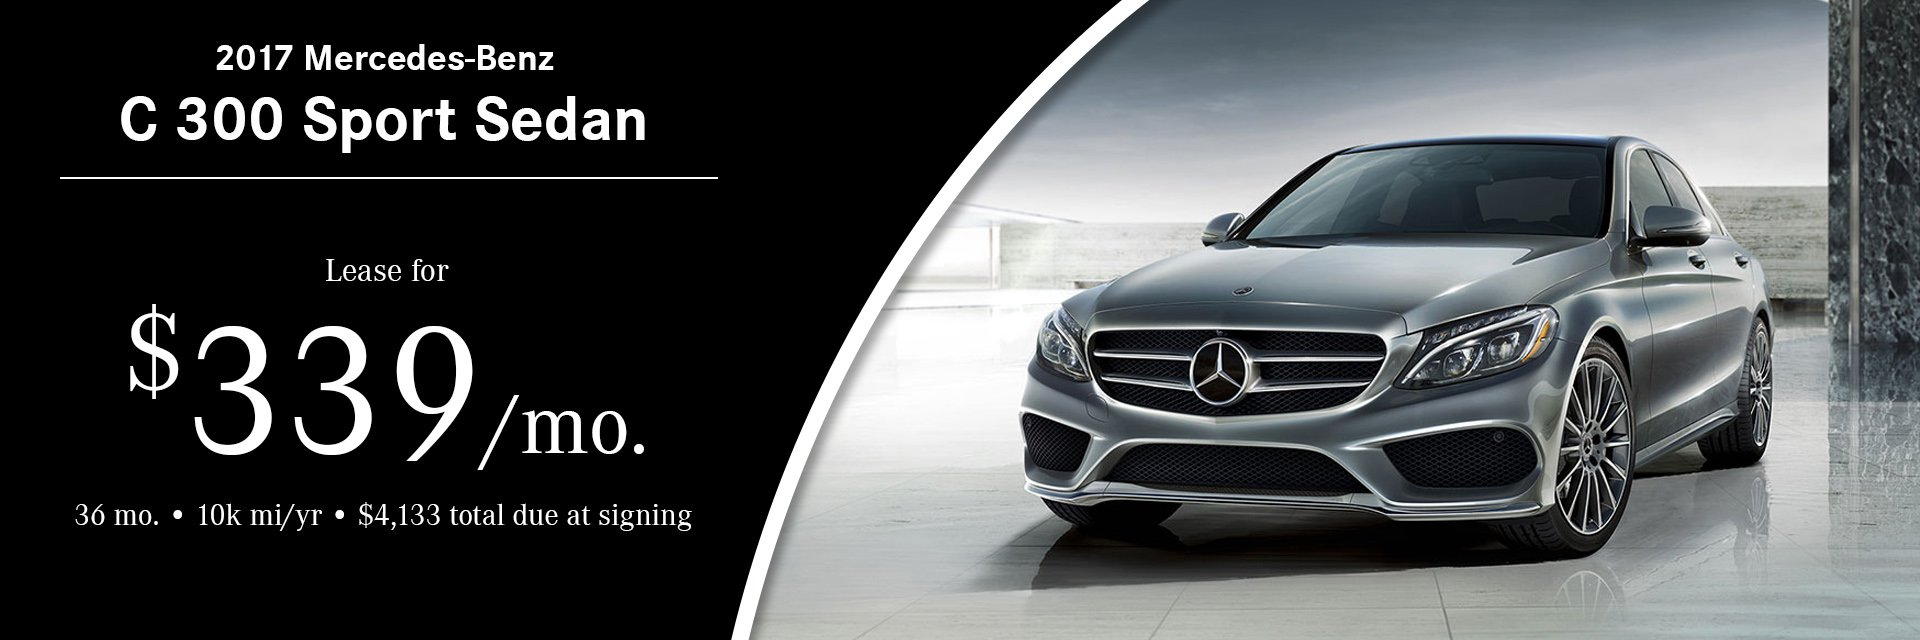 mercedes benz of westwood new used dealership serving